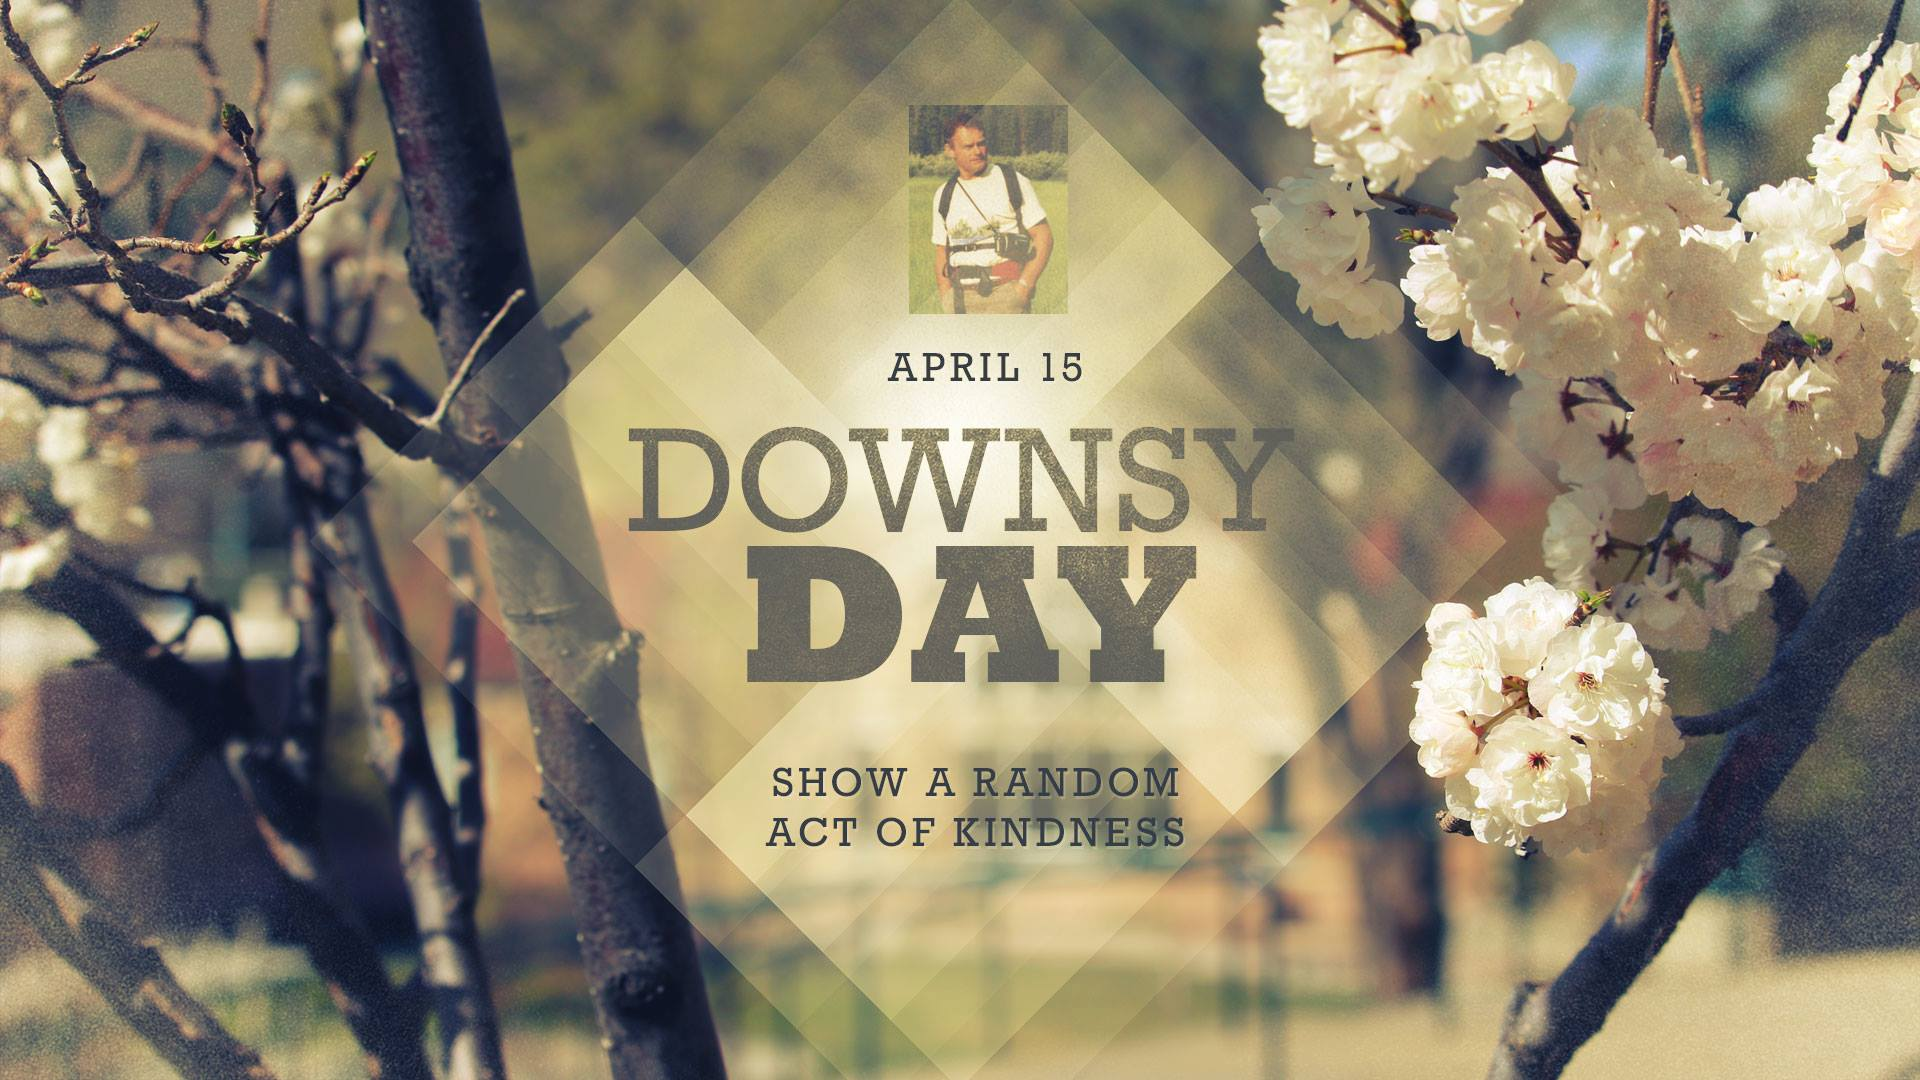 Downsy Day Graphic